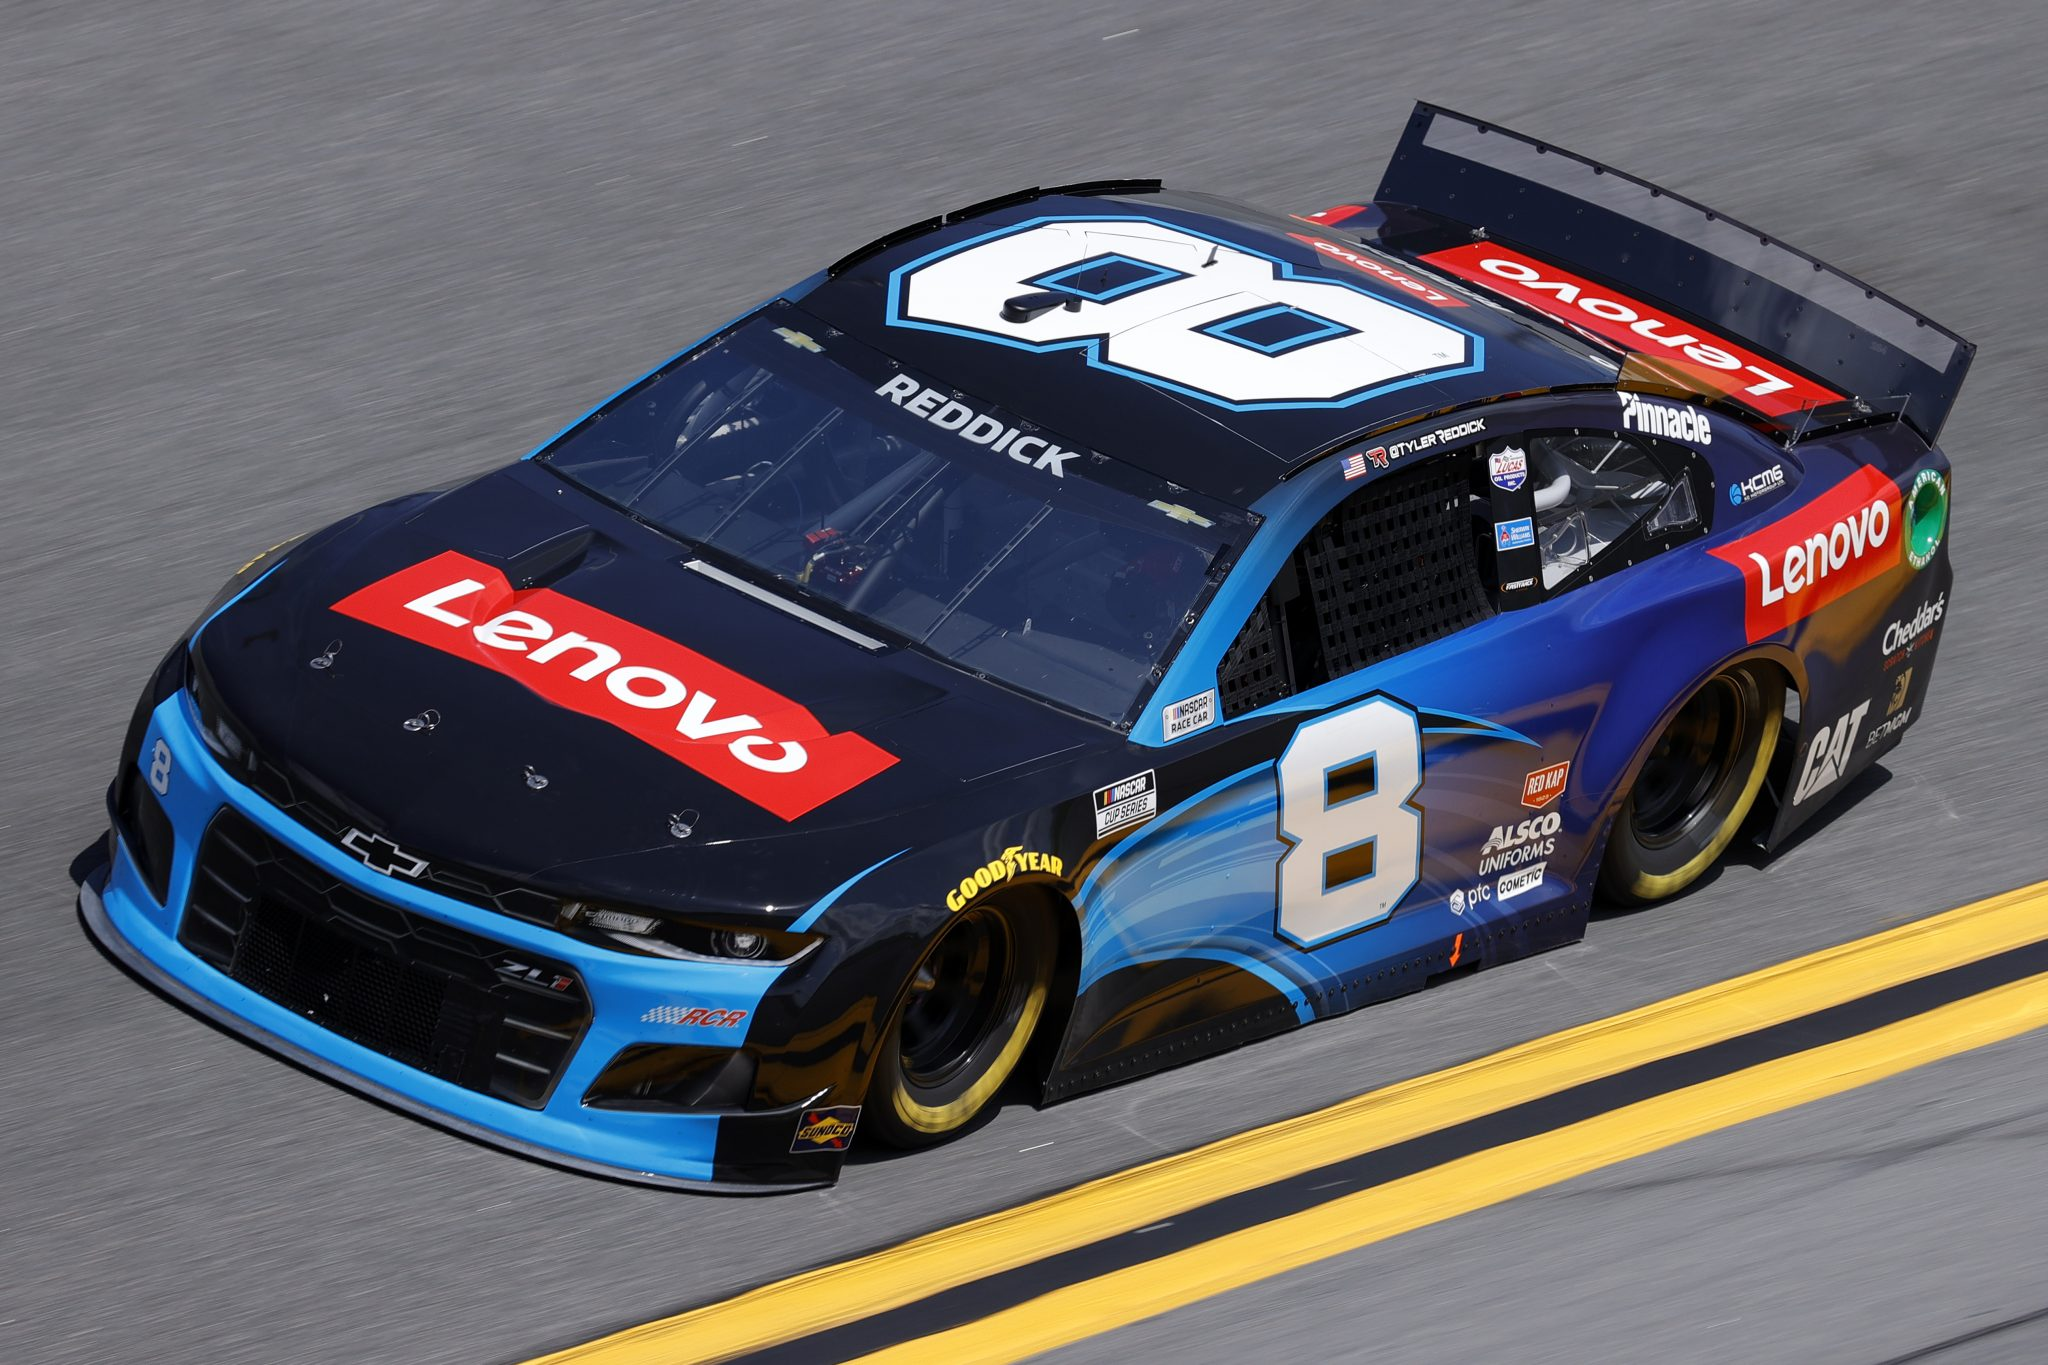 DAYTONA BEACH, FLORIDA - FEBRUARY 10: Tyler Reddick, driver of the #8 Lenovo Chevrolet, during practice for the NASCAR Cup Series 63rd Annual Daytona 500 at Daytona International Speedway on February 10, 2021 in Daytona Beach, Florida. (Photo by Jared C. Tilton/Getty Images) | Getty Images